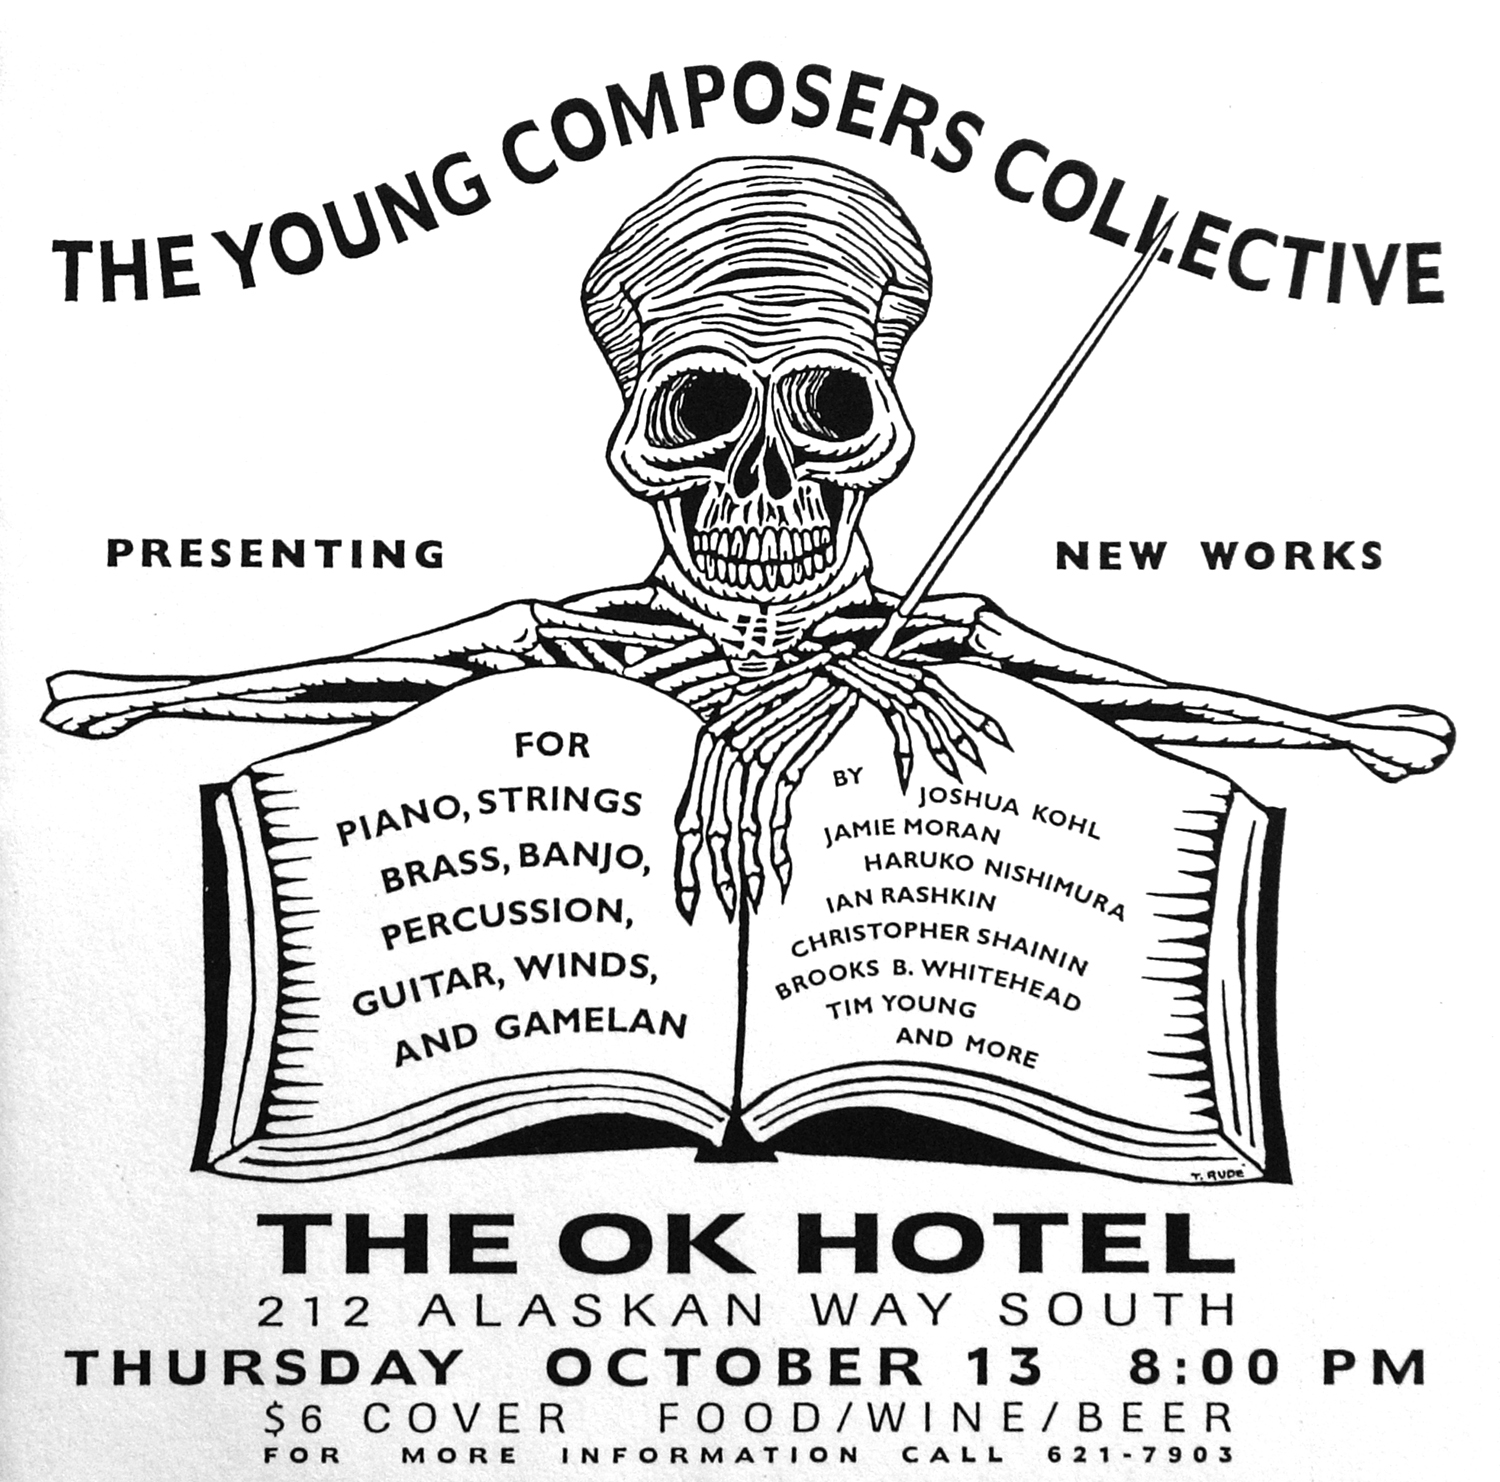 The Young Composers Collective poster. Woodcut by Thomas Rude. circa 1990s